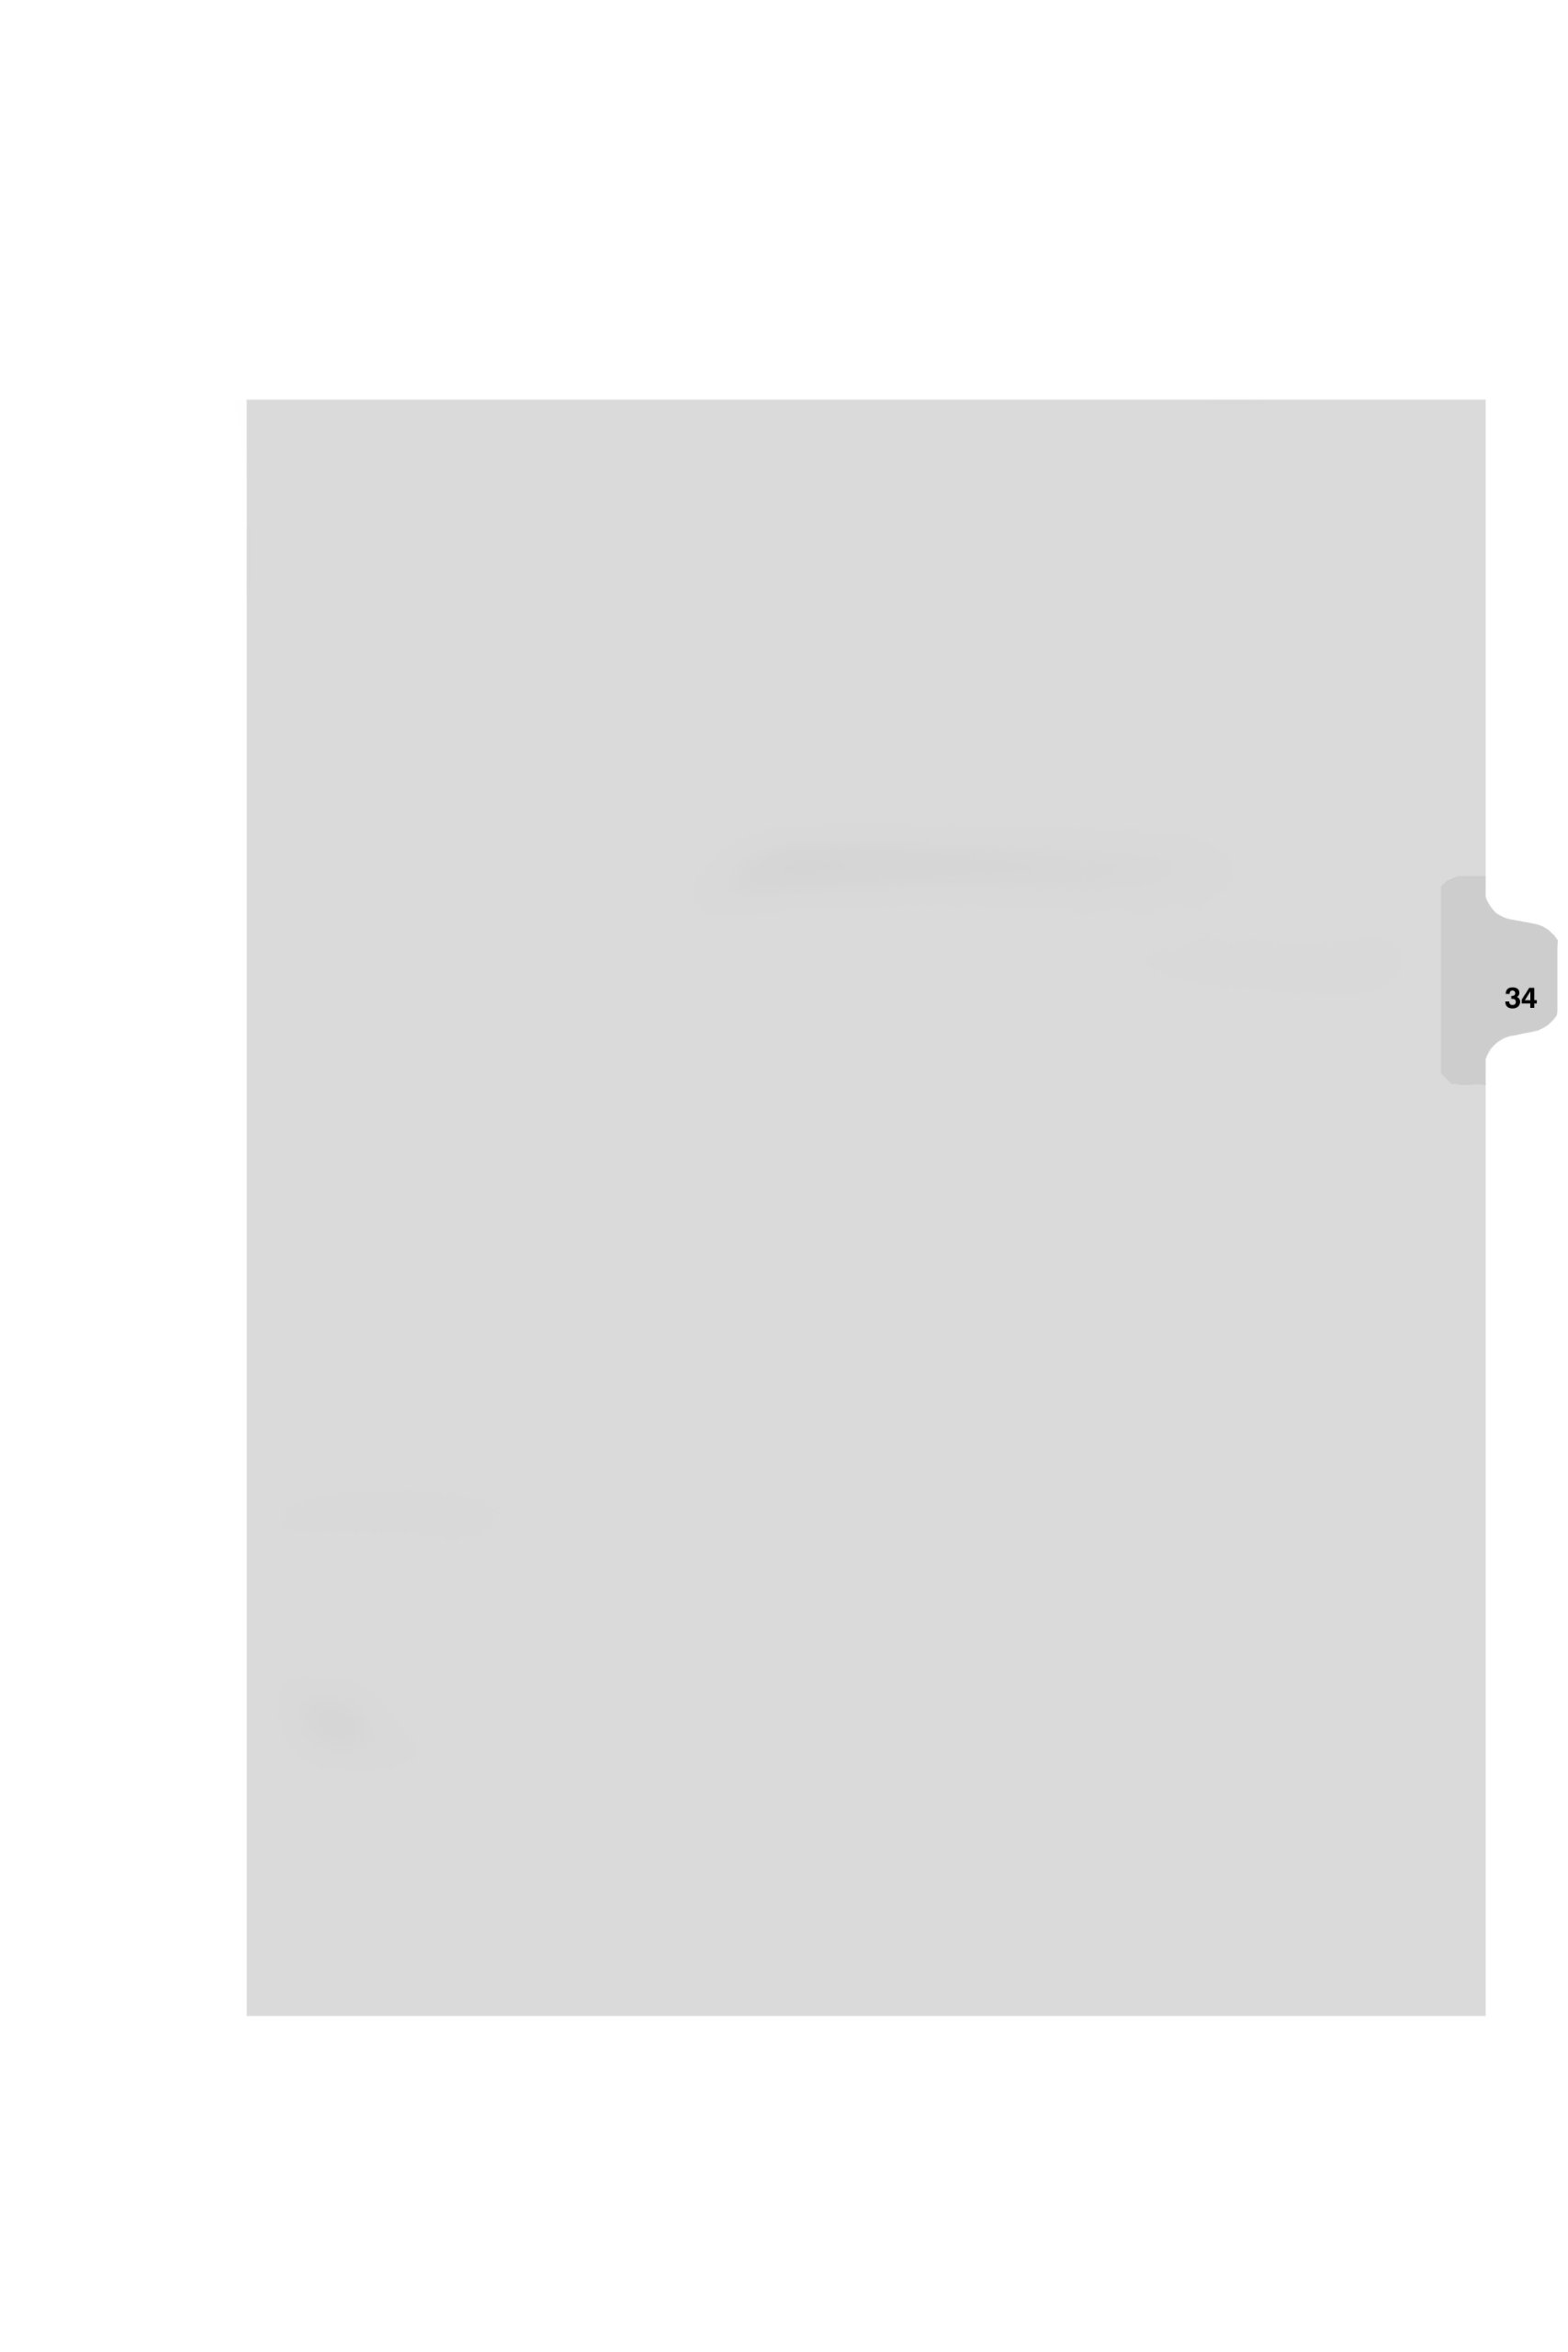 Kleer-Fax Letter Size Individual Number Index Dividers, Side Tab, 1/25th Cut, 25 Sheets per Pack, White, Number 34 (82234)